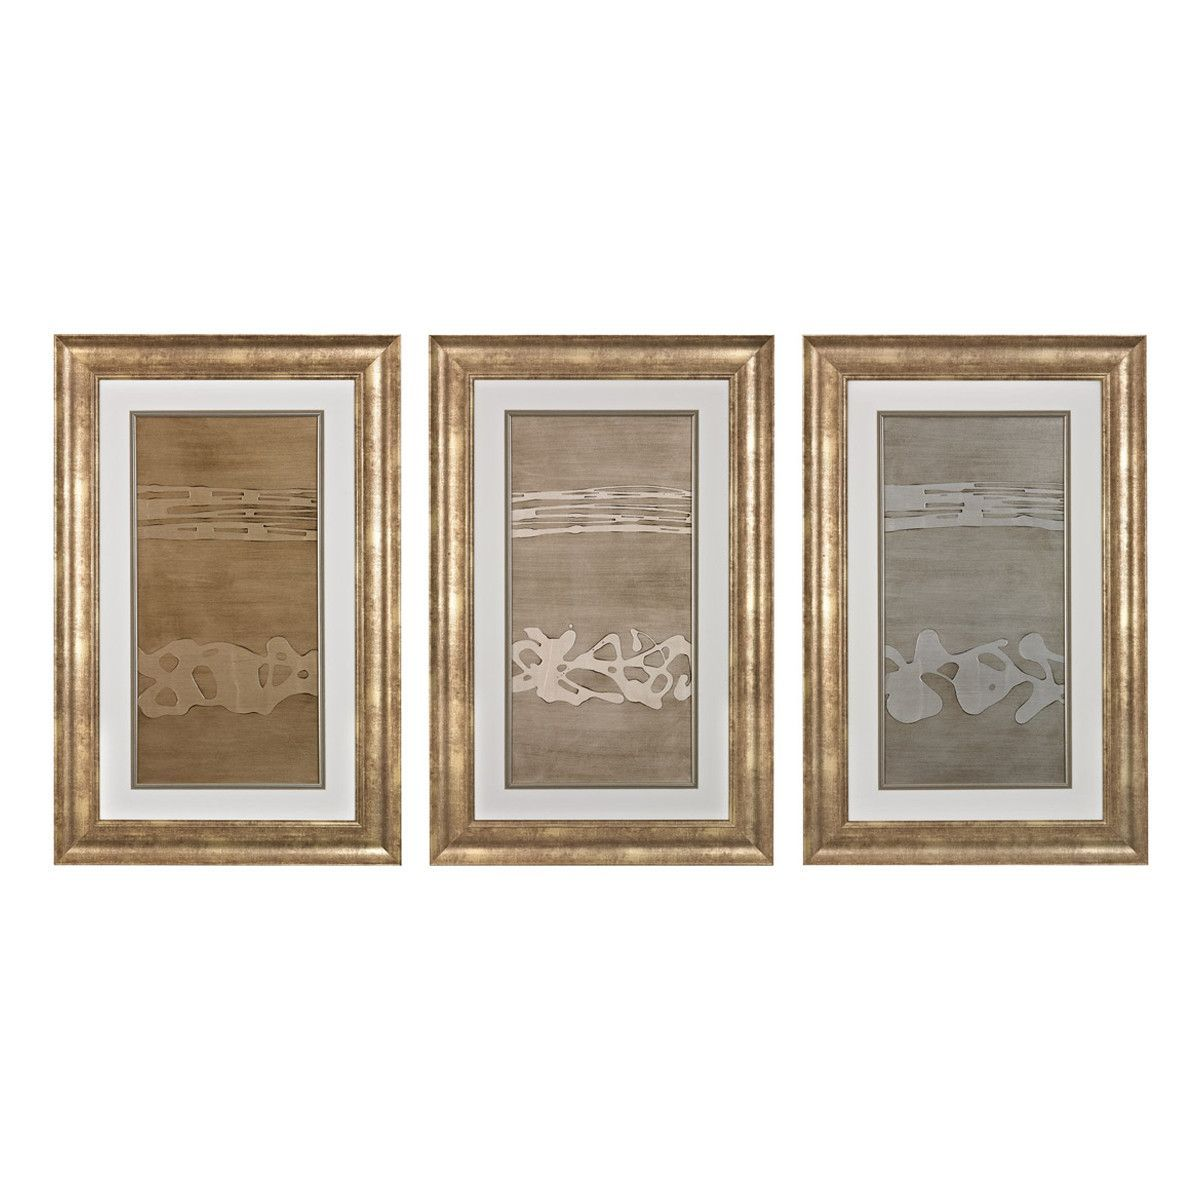 Metal alloy framed art in antique gold set of 3 products metal alloy framed art in antique gold set of 3 jeuxipadfo Gallery